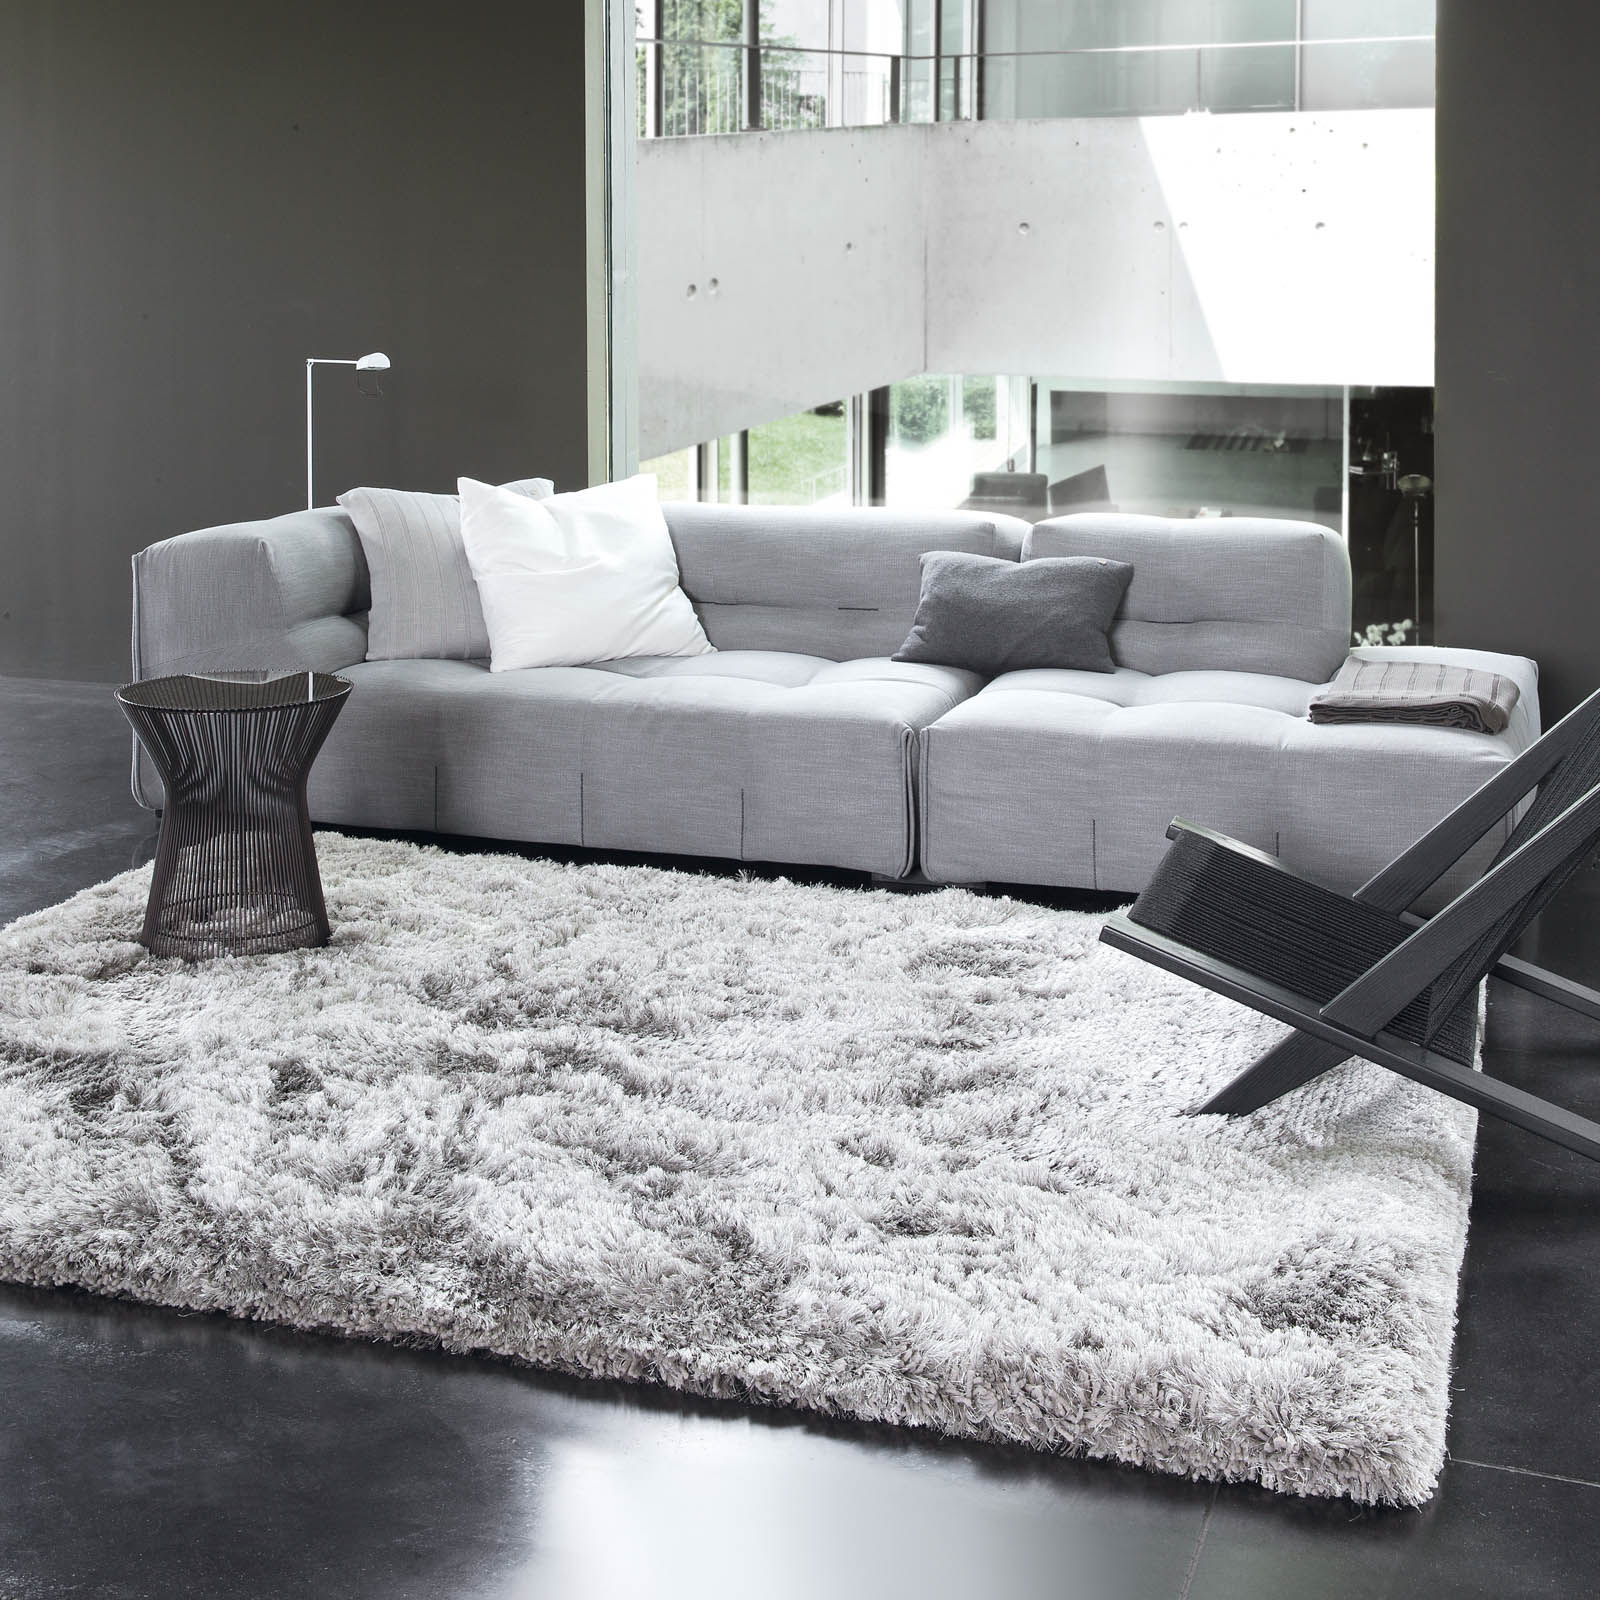 uni adore shaggy rugs 207 001 920 in silver by ligne. Black Bedroom Furniture Sets. Home Design Ideas